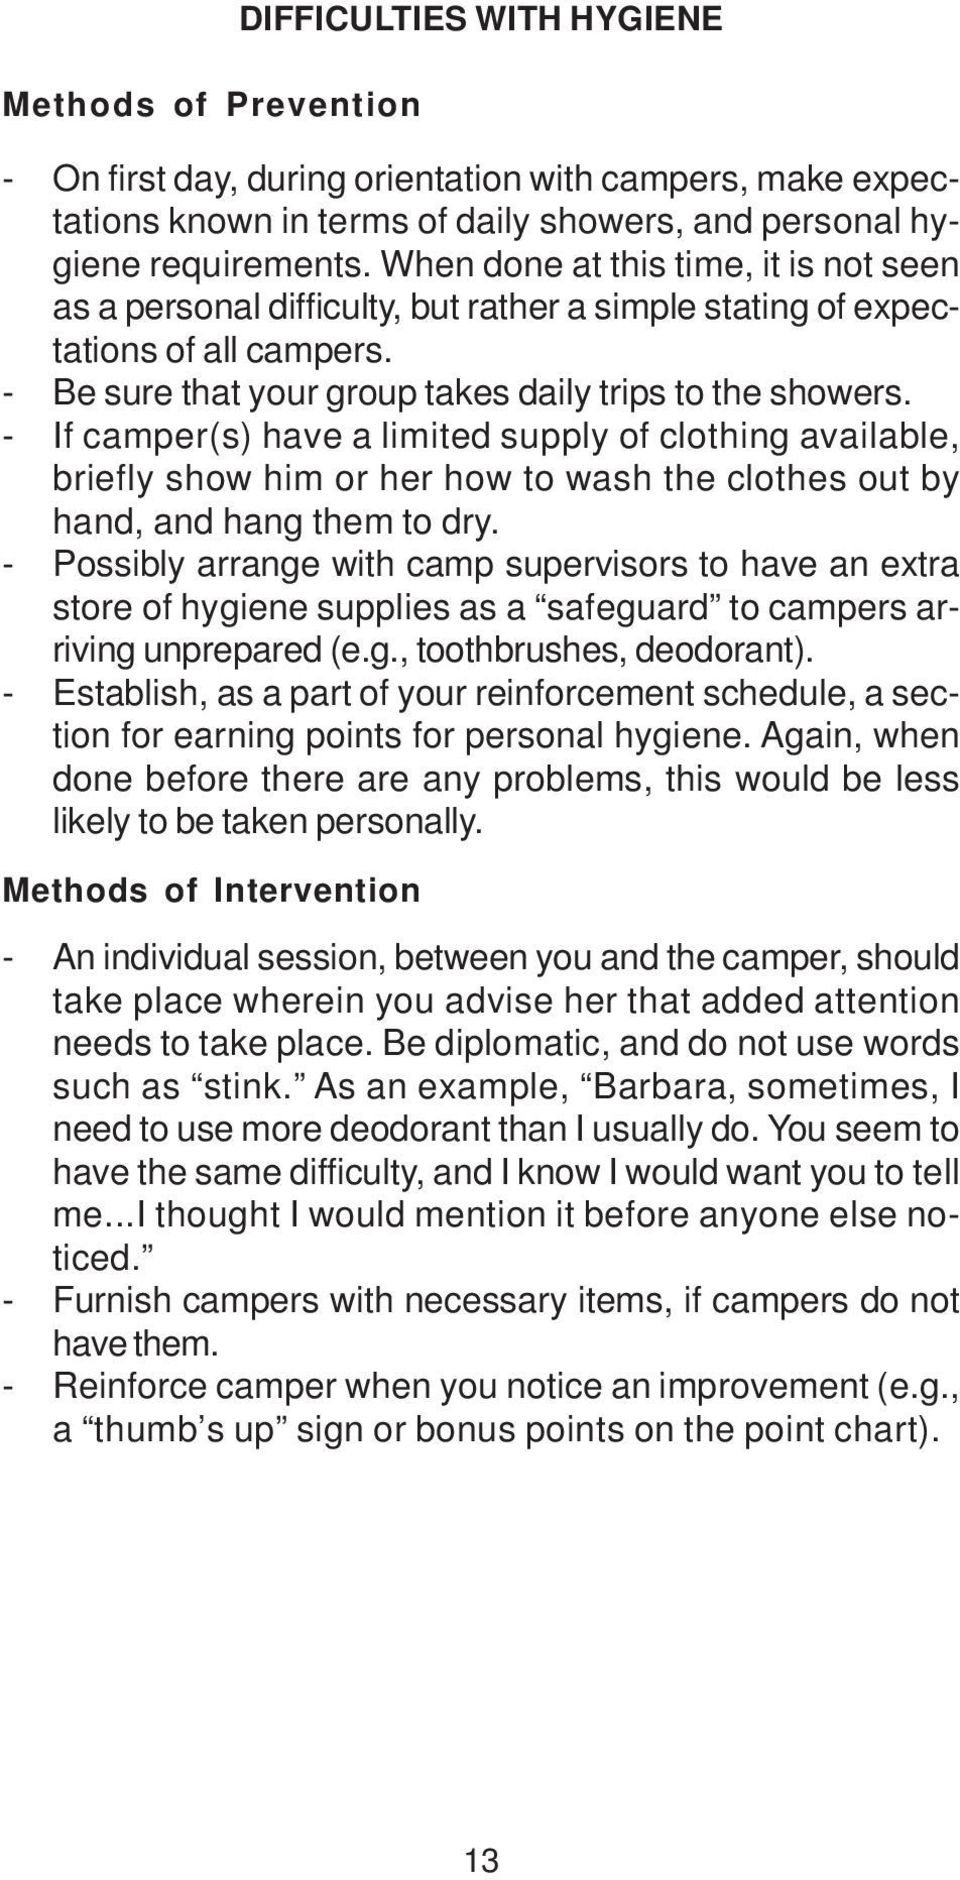 - If camper(s) have a limited supply of clothing available, briefly show him or her how to wash the clothes out by hand, and hang them to dry.